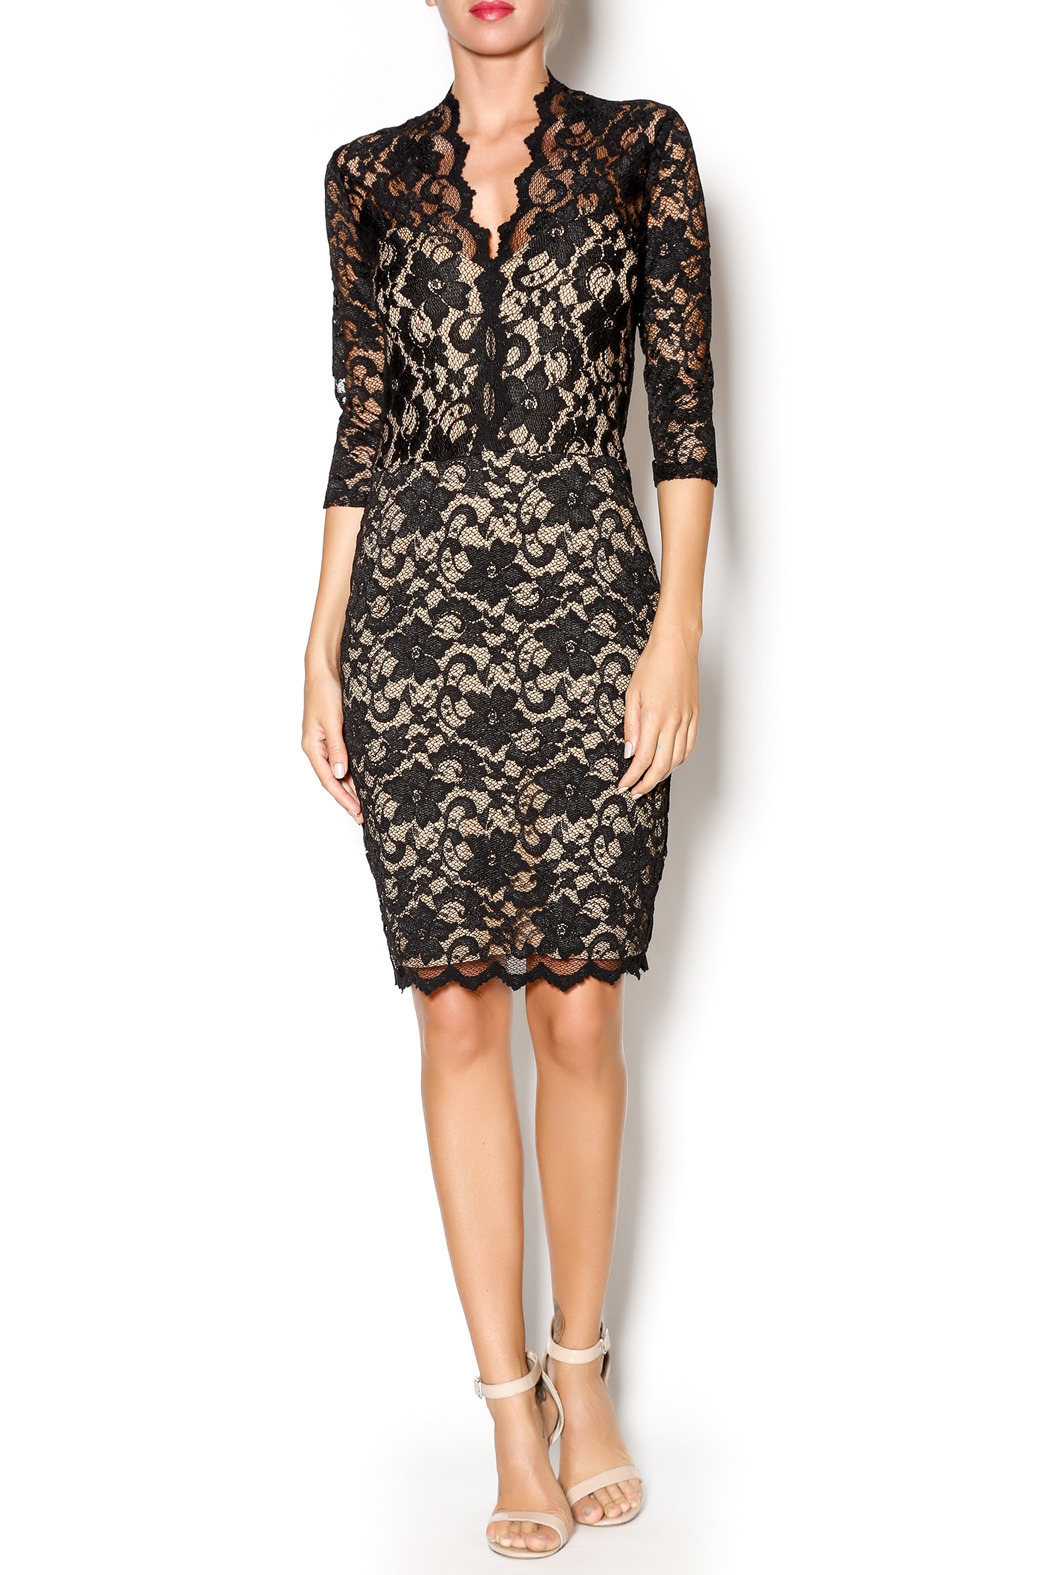 Karen Kane Scallop Border Lace Dress From Ocean Springs By Bayou